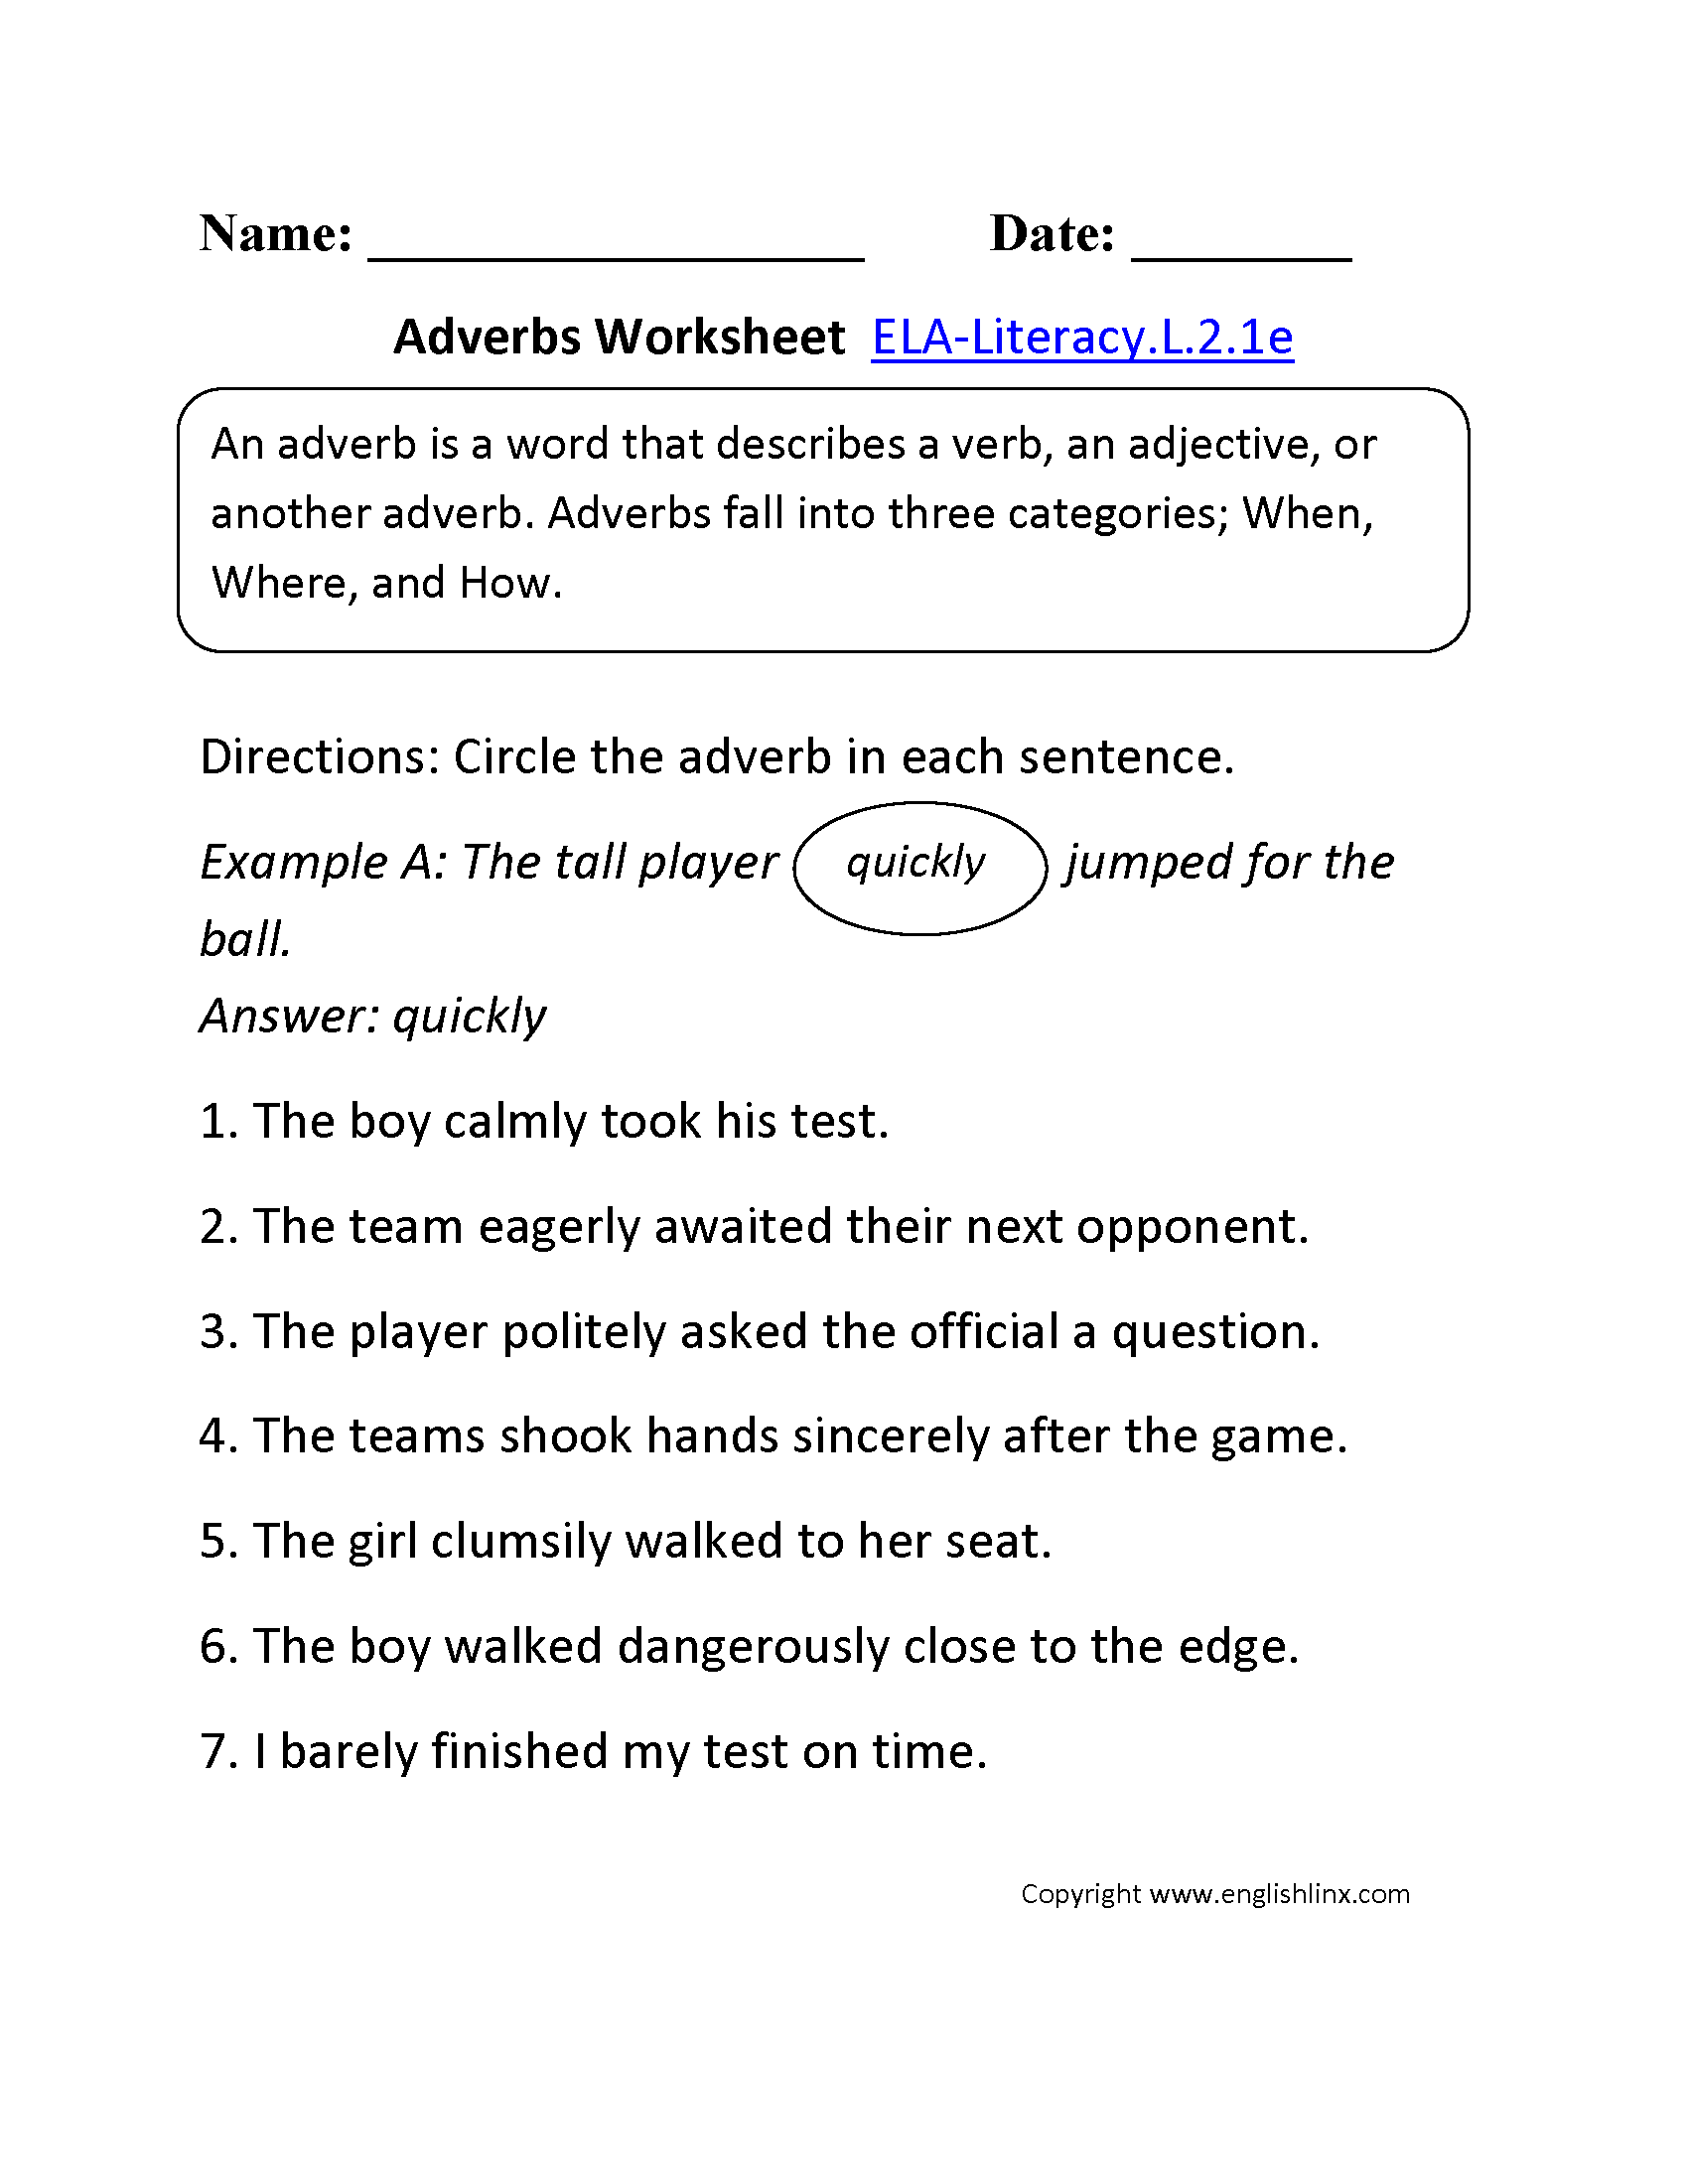 Worksheet Adverbs For Grade 2 2nd grade common core language worksheets adverbs worksheet 1 ela literacy l 2 1e worksheet